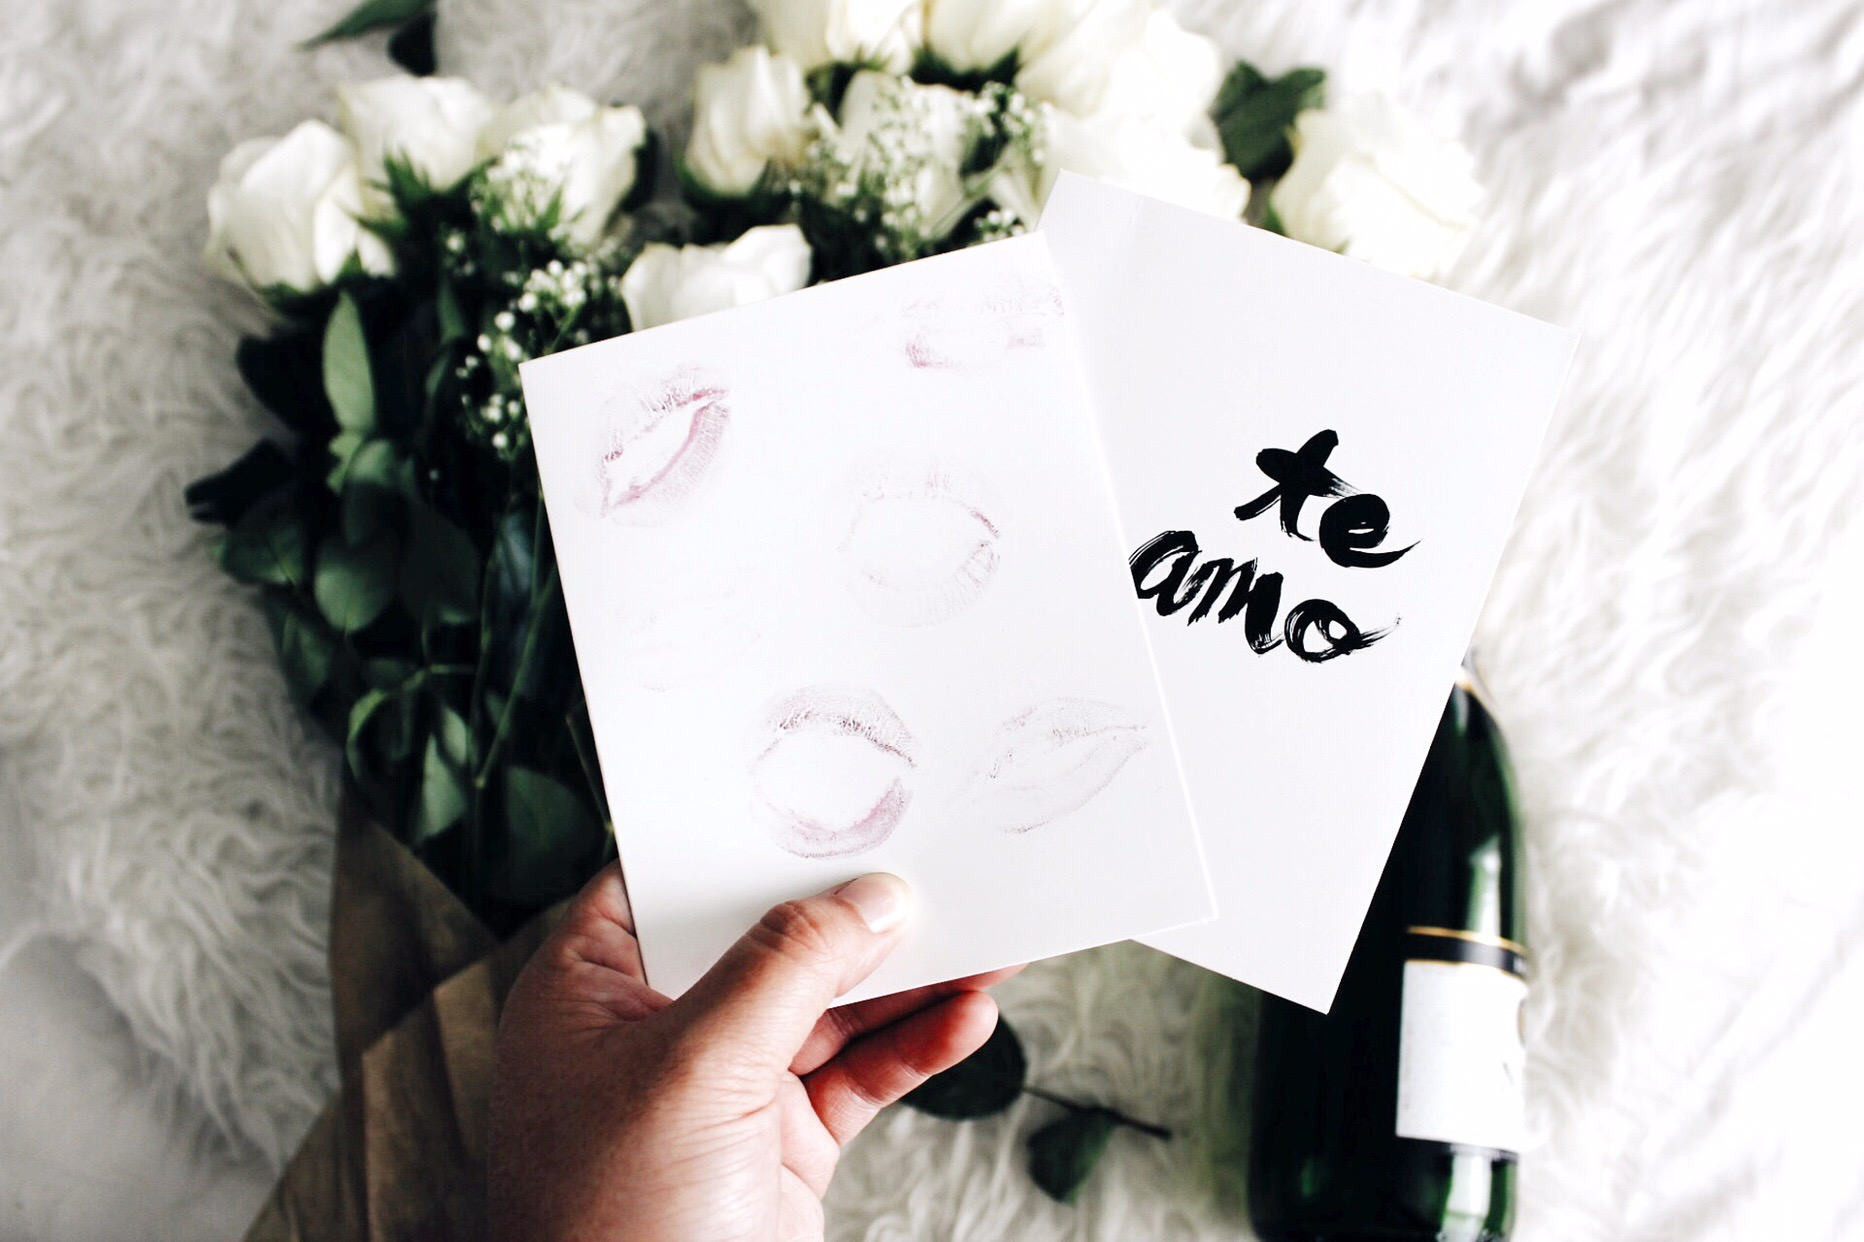 put some lipstick on and smooch it on a blank card or use acrylic paint to write your favorite quotes.